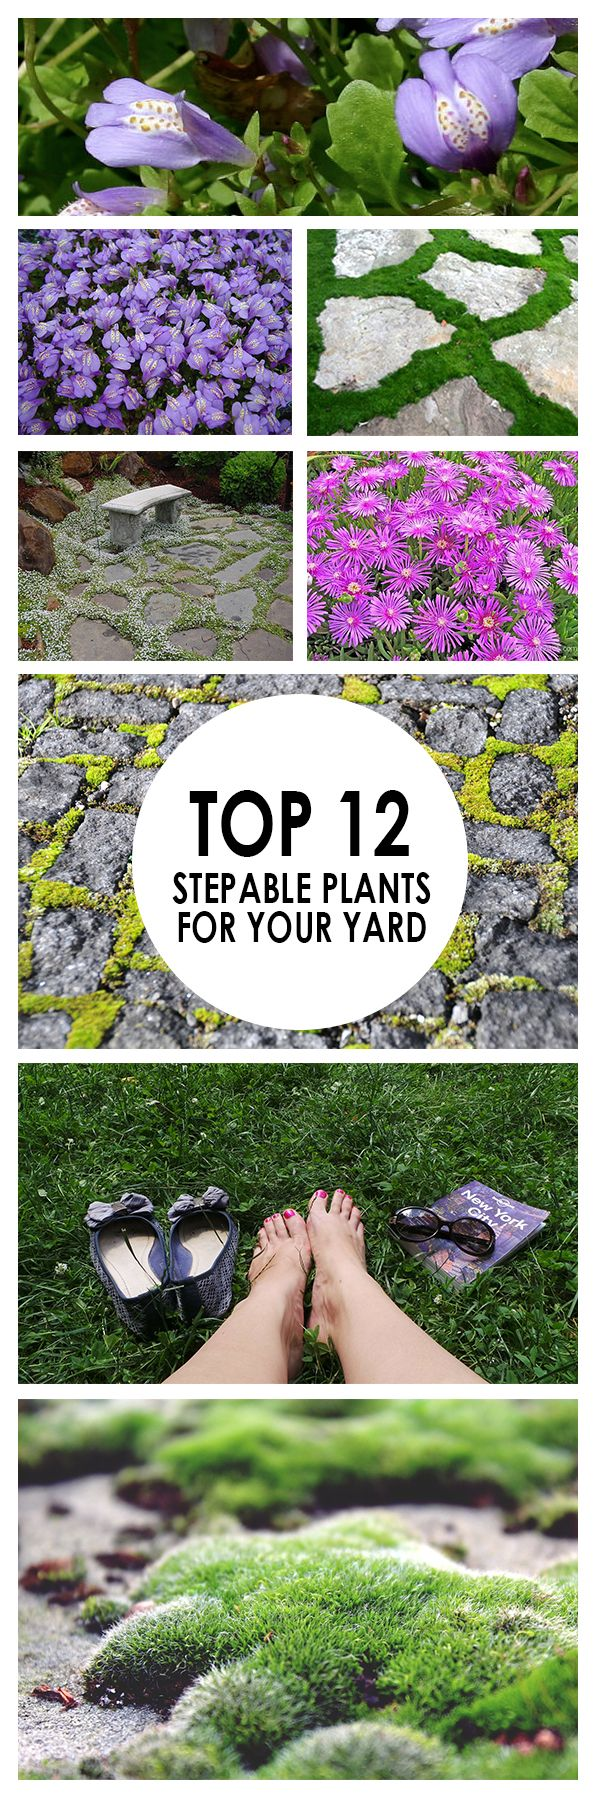 If you don't enjoy tip toeing around your yard to avoid your plants, it may be time to bring in some shrubs that tolerate foot traffic. Here are 12 stunning plants that stand up well when walked on.